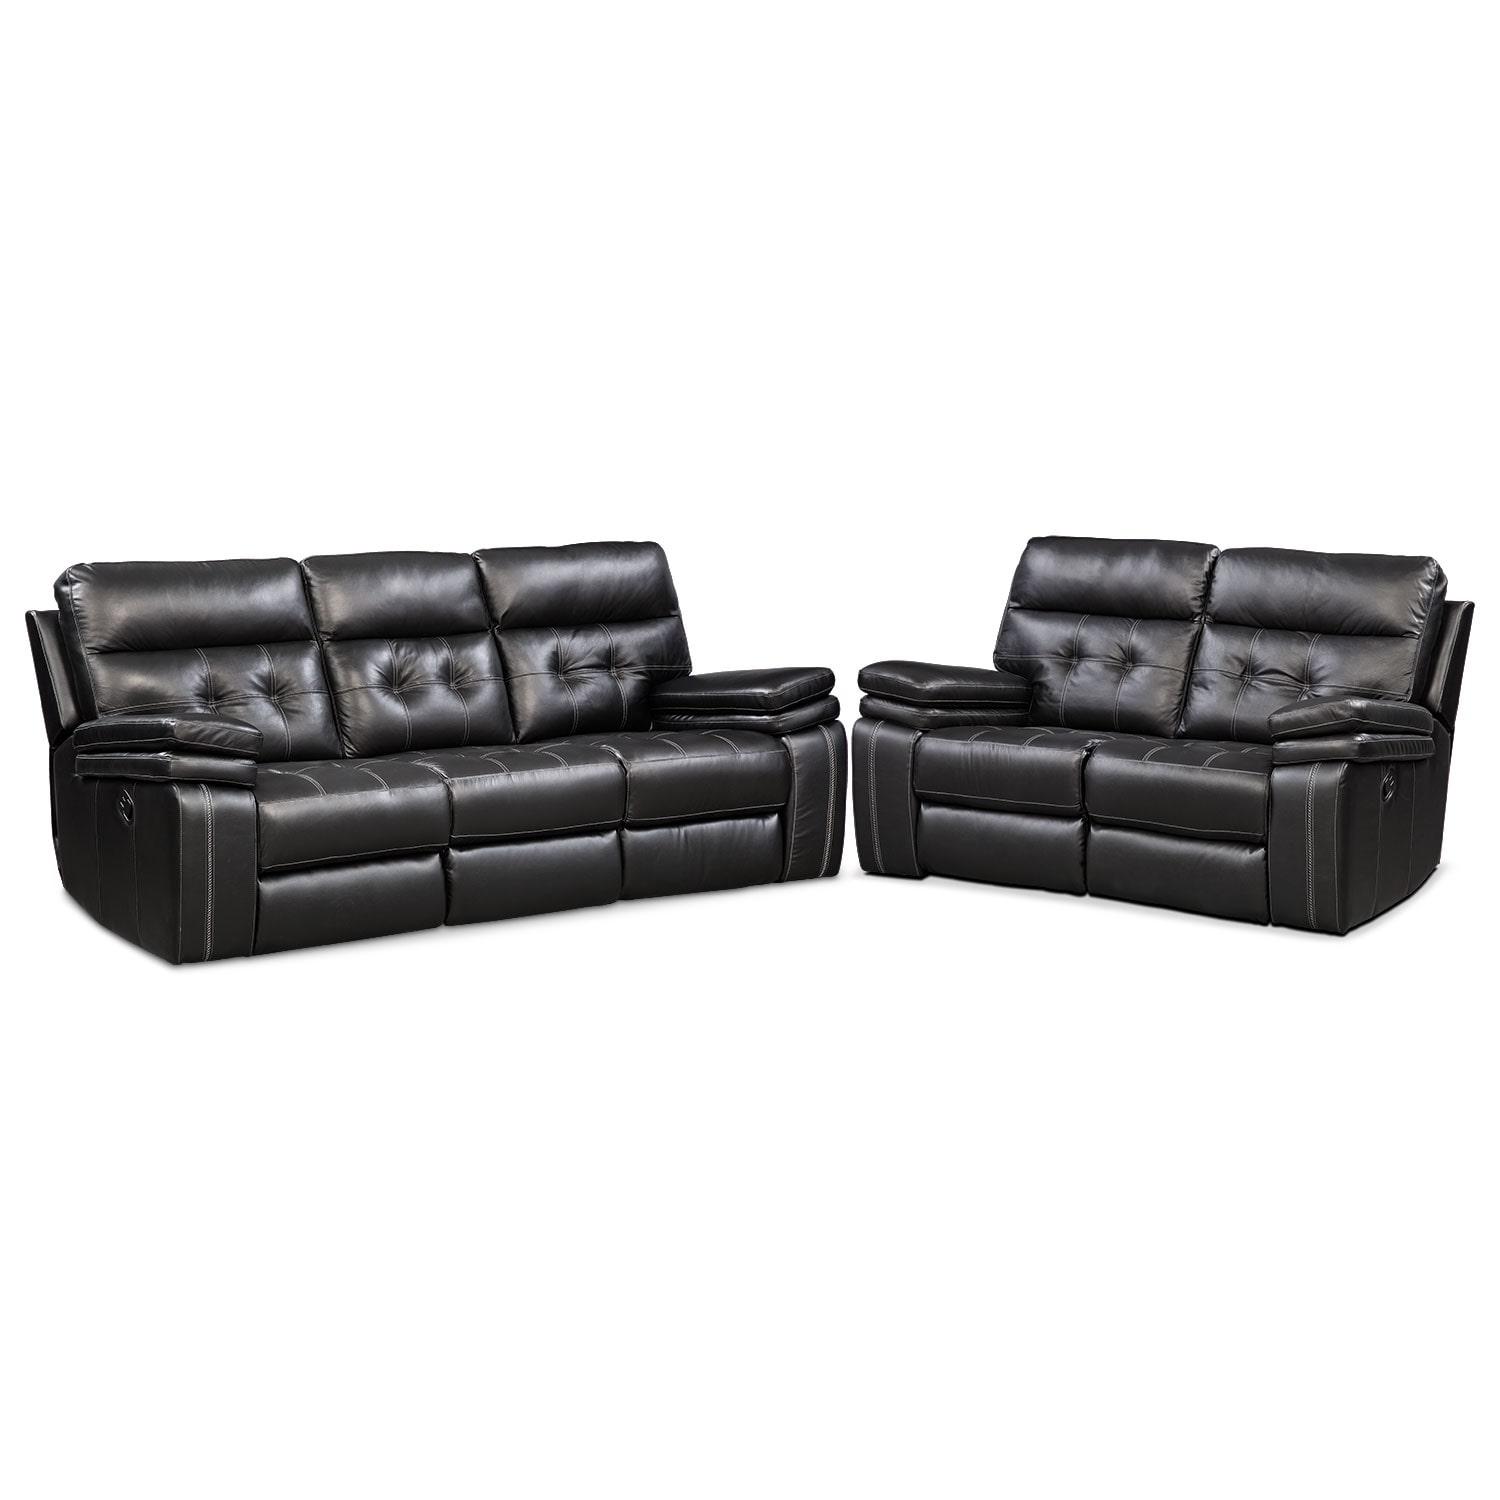 brisco manual reclining sofa and reclining loveseat set black american signature furniture